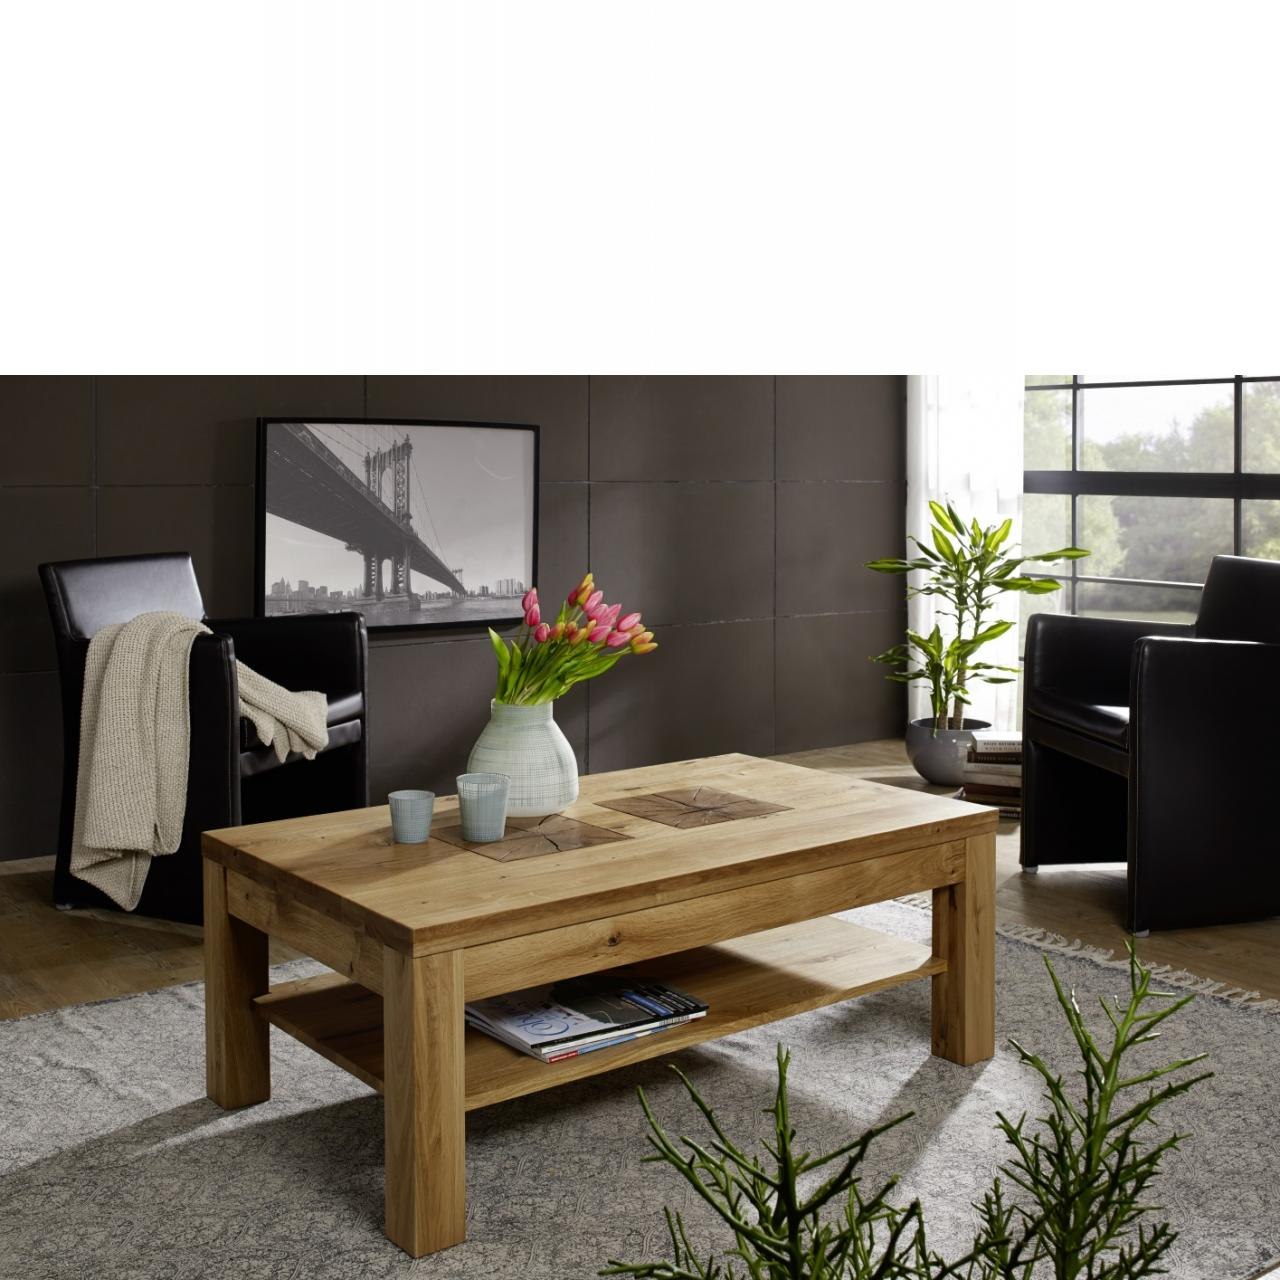 kommode harlekin beim bel wohnen m bel j hnichen. Black Bedroom Furniture Sets. Home Design Ideas